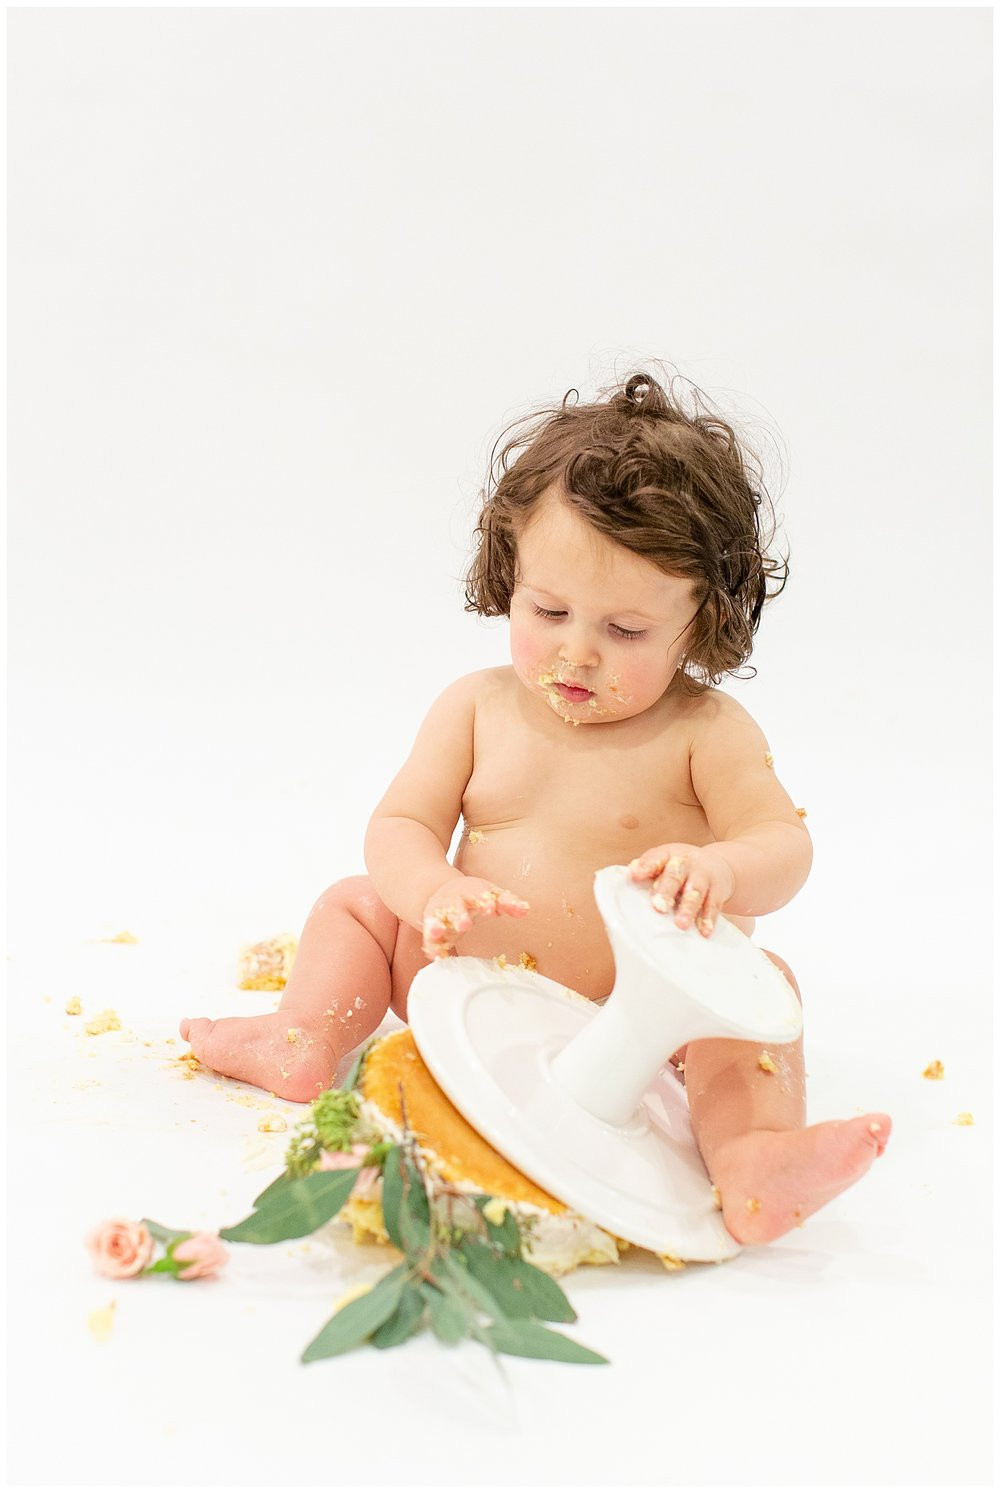 emily-belson-photography-washington-dc-baby-cake-smash-23.jpg